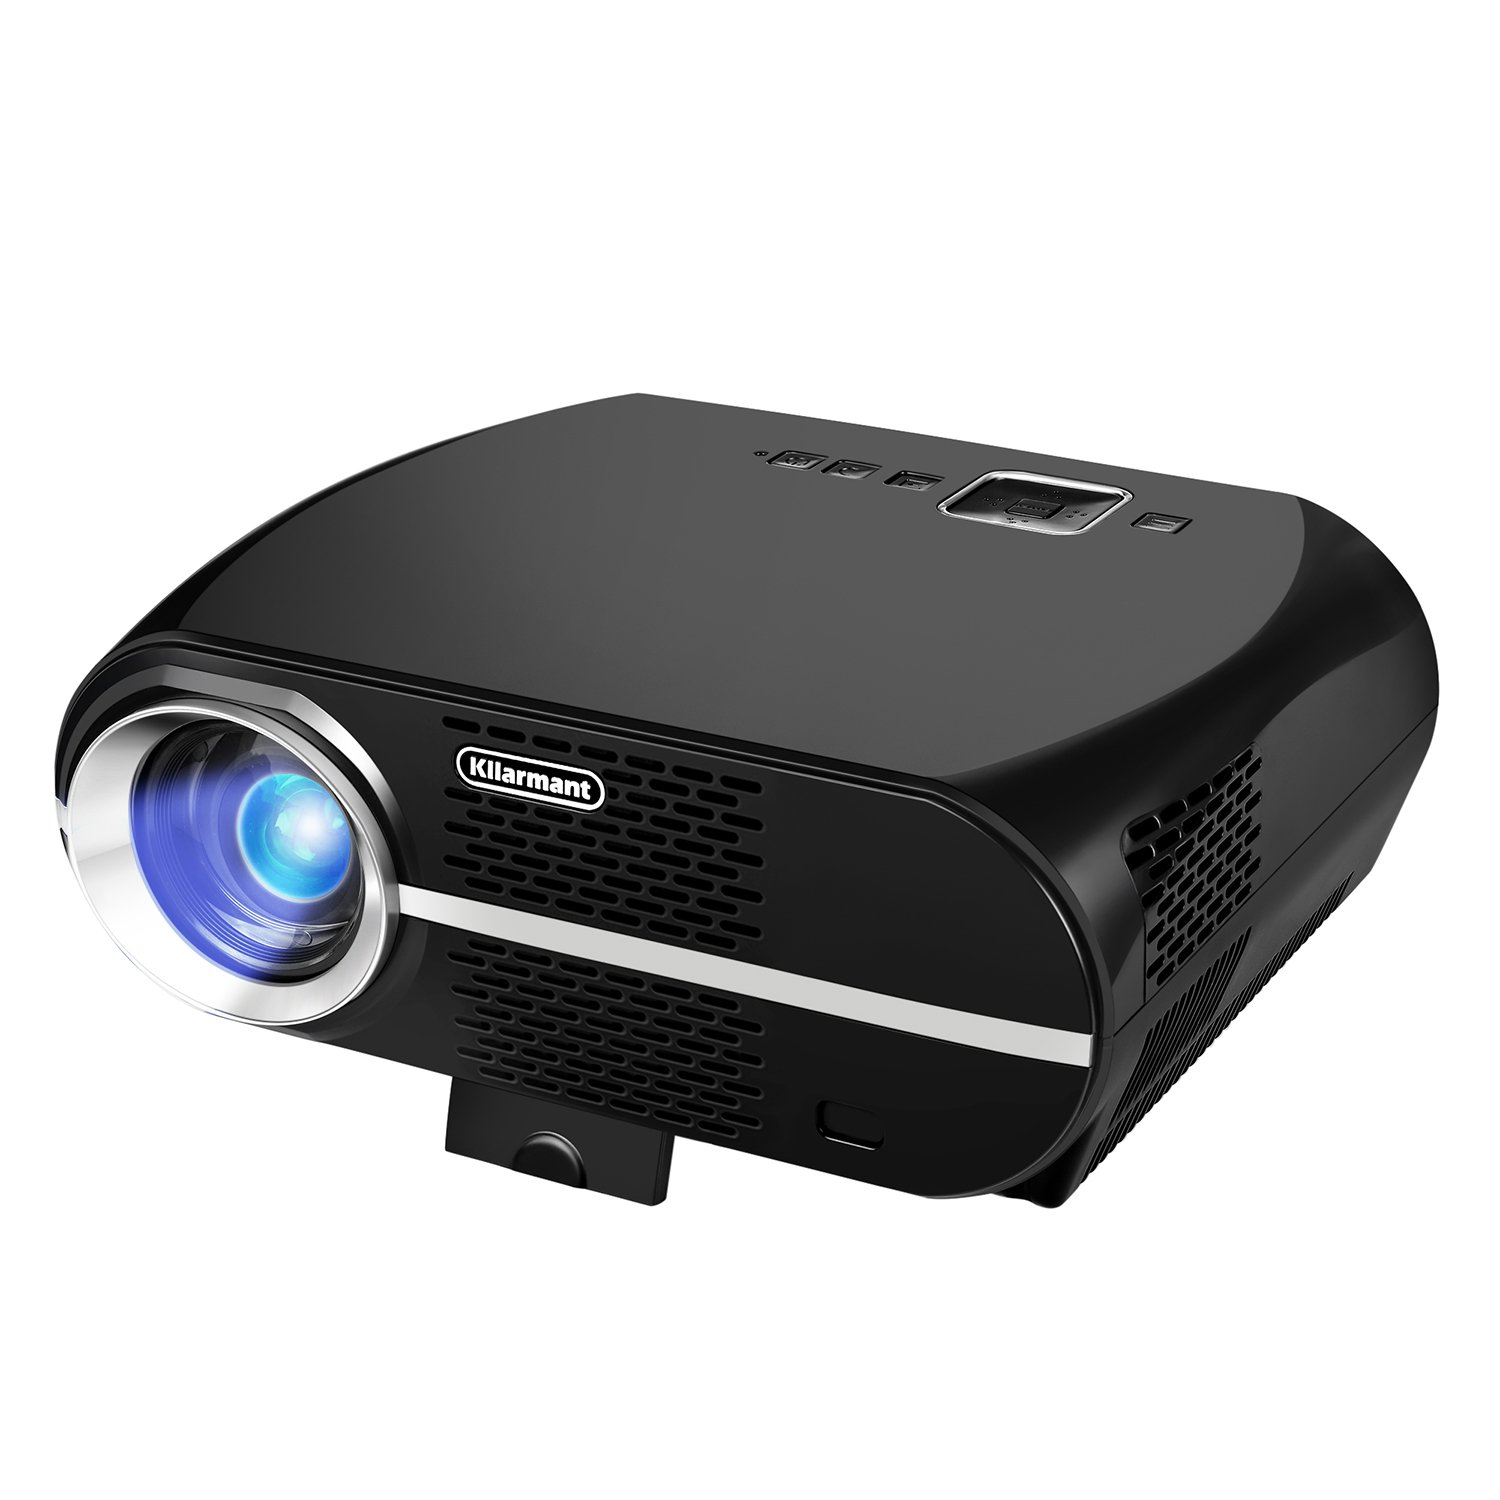 Kllarmant Video Projector, Portable Home Theater Projector GP100 3500 Lumens Resolution 1280x800 Support 1080P USB HDMI VGA for Video Games and Home Cinema Theater by Kllarmant